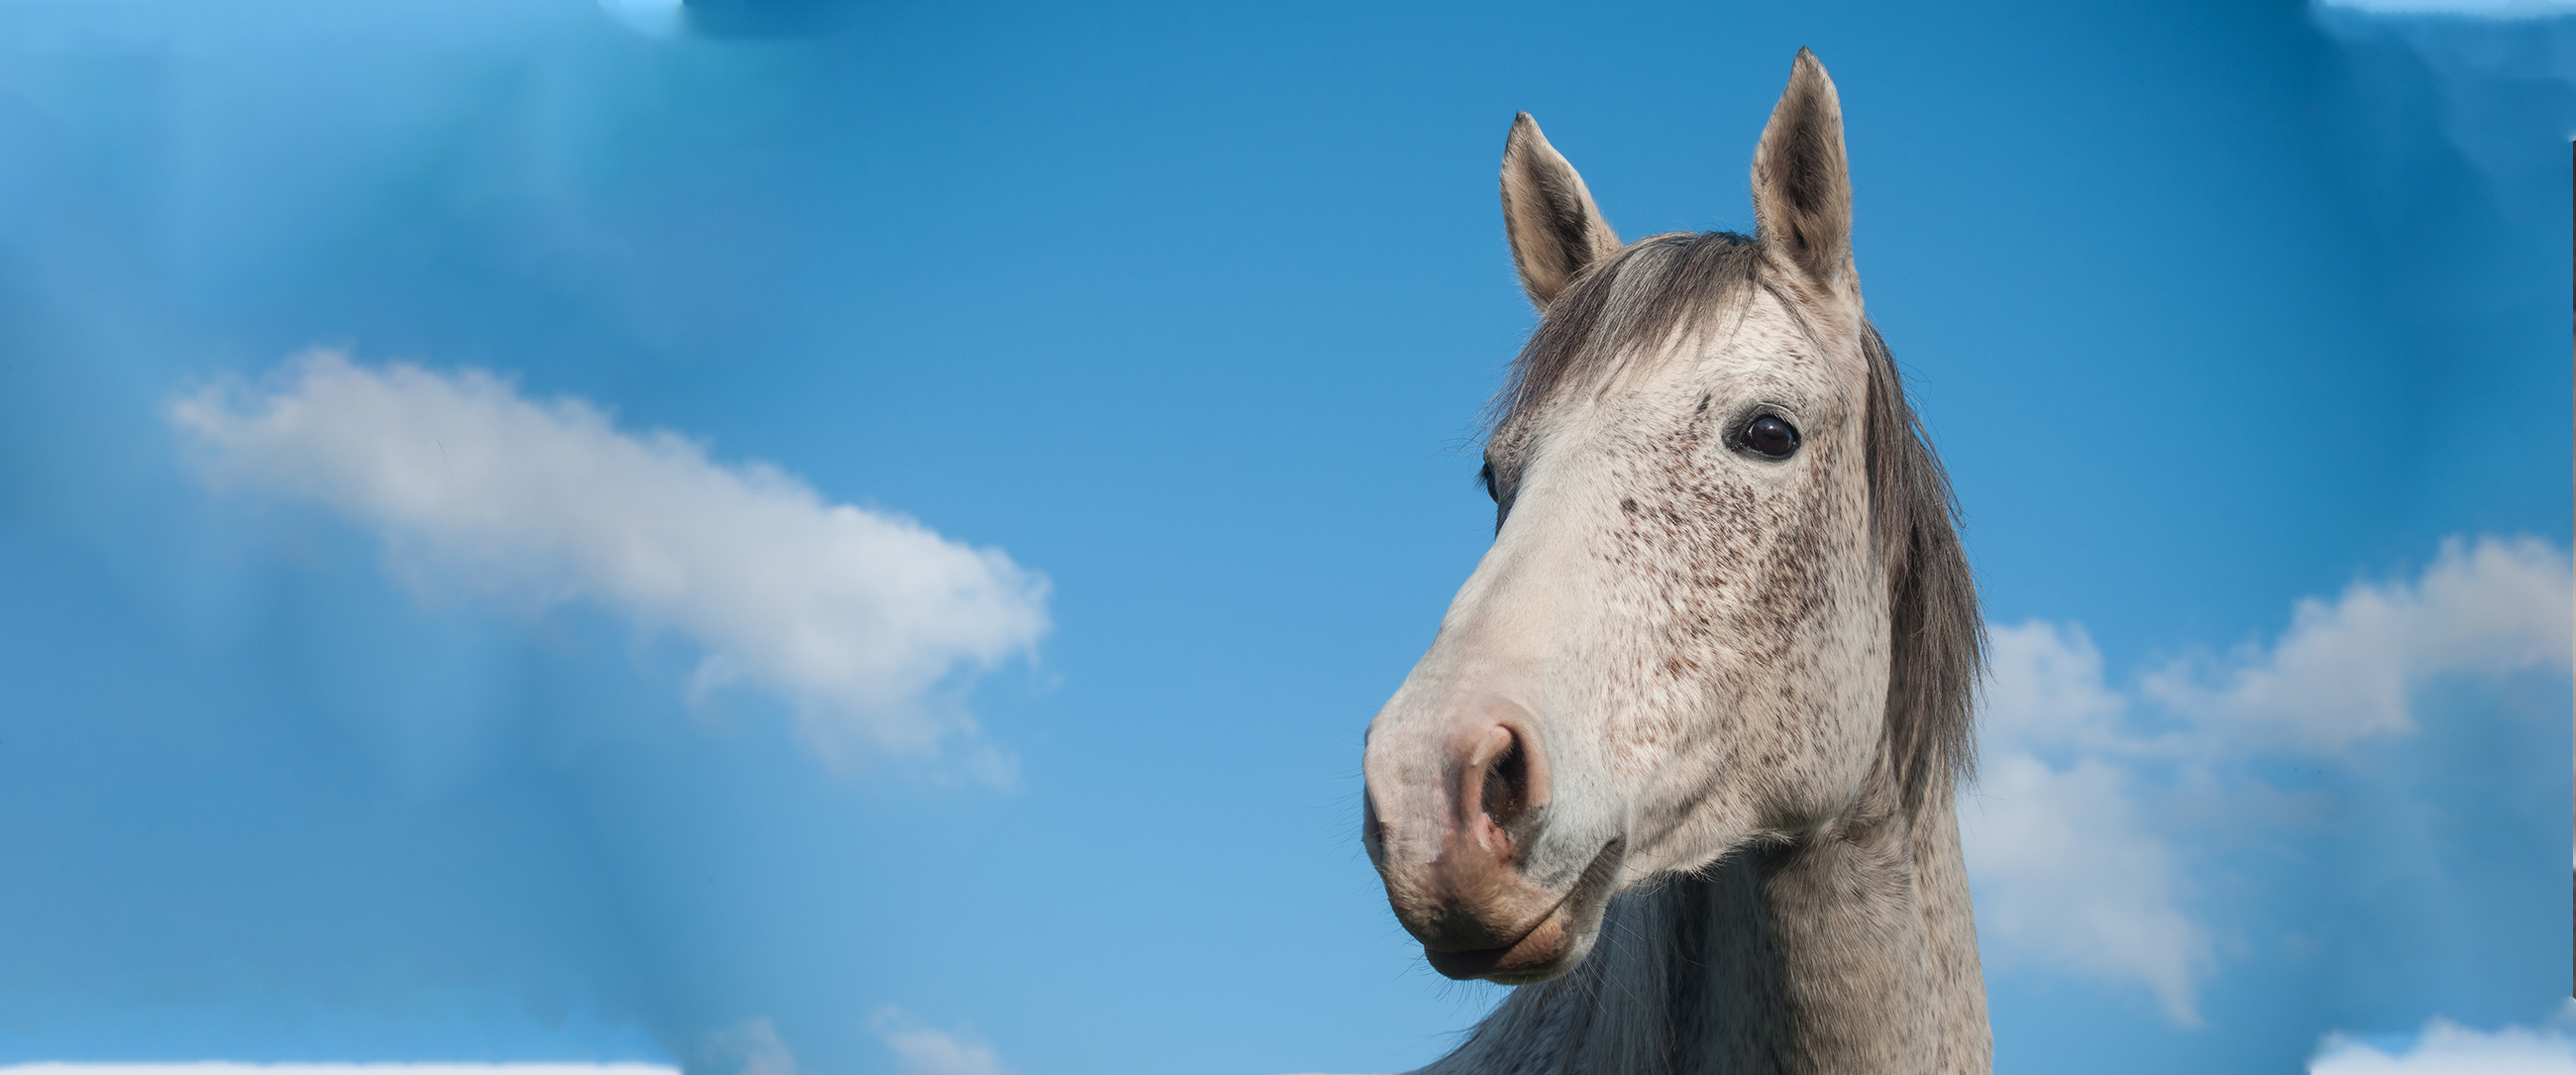 Equine Dentistry Updates for Improved Standard of Care & Services – Page